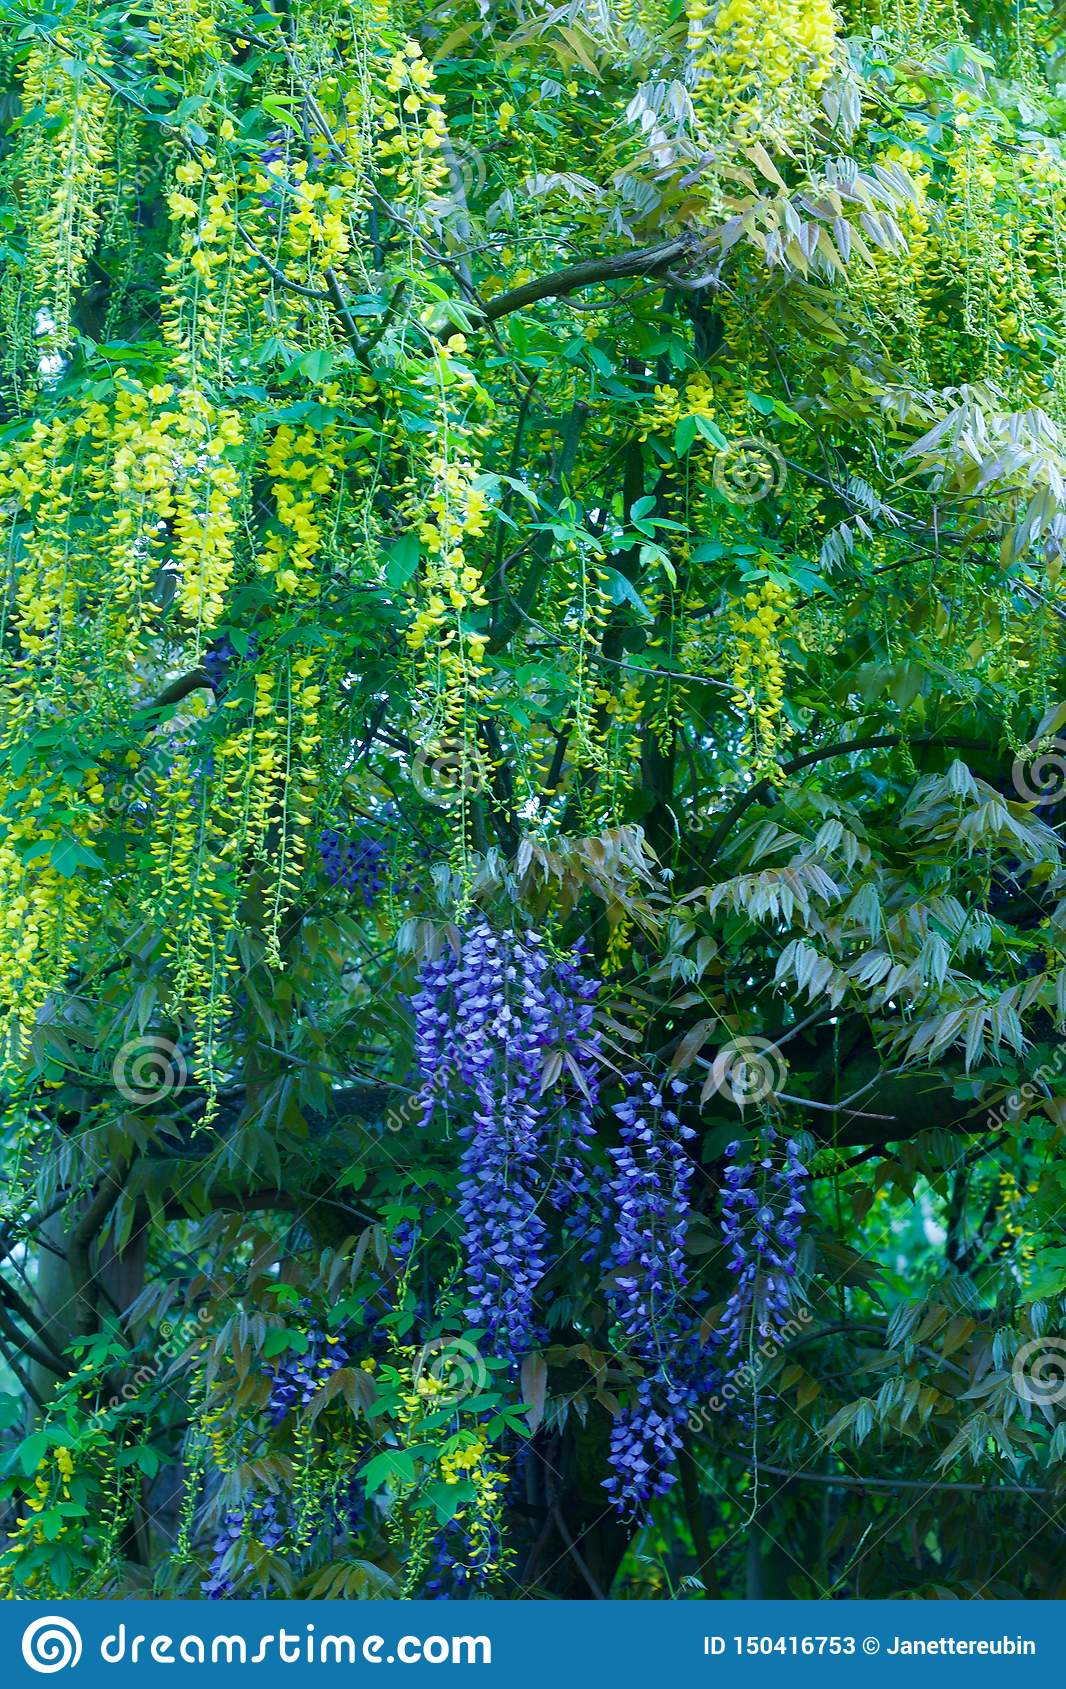 Contrasting coloured wisterias in yellow and purple - image